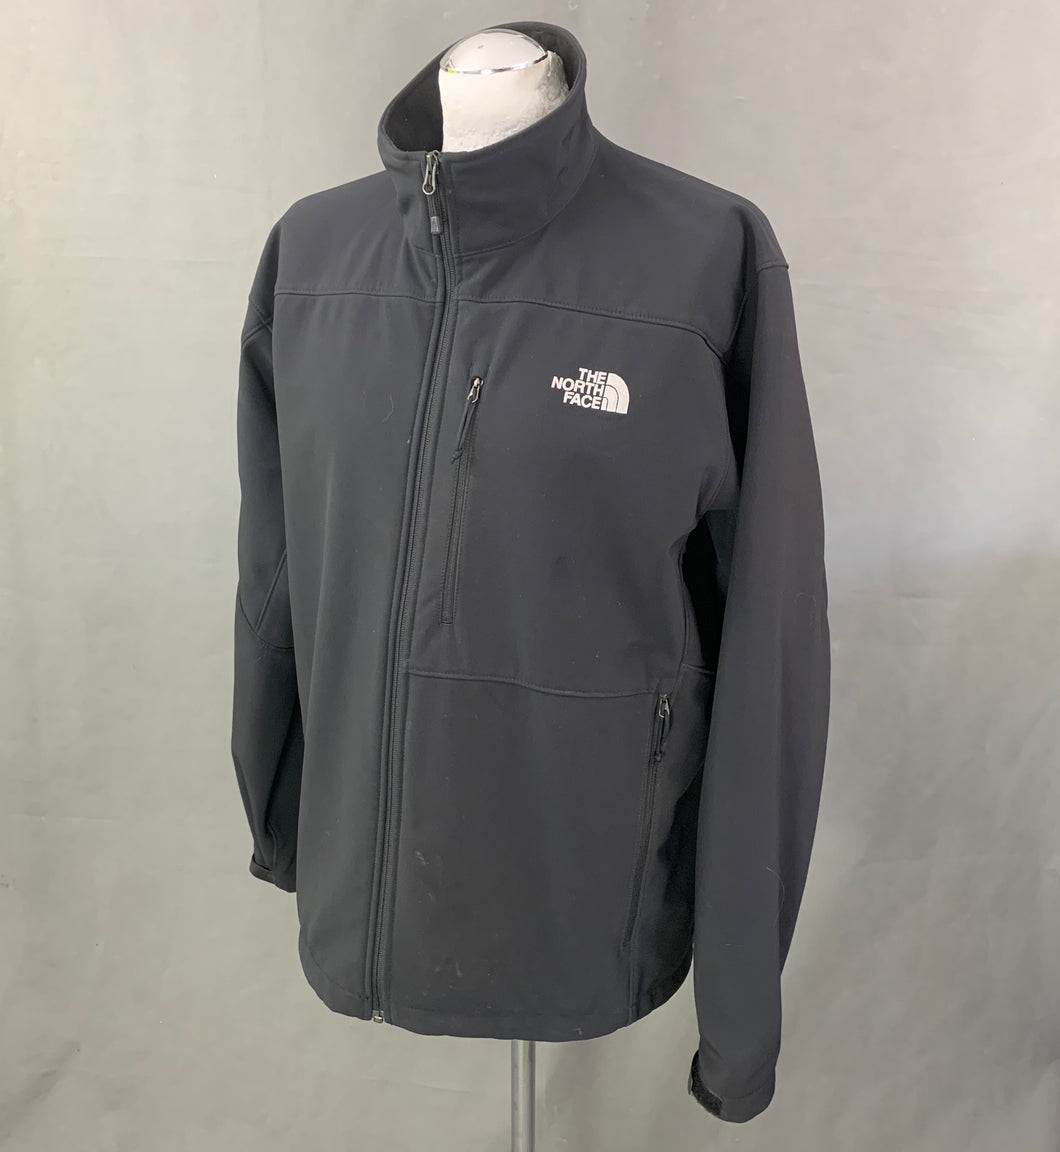 THE NORTH FACE Mens Black Soft Shell JACKET / COAT - Size Extra Large - XL